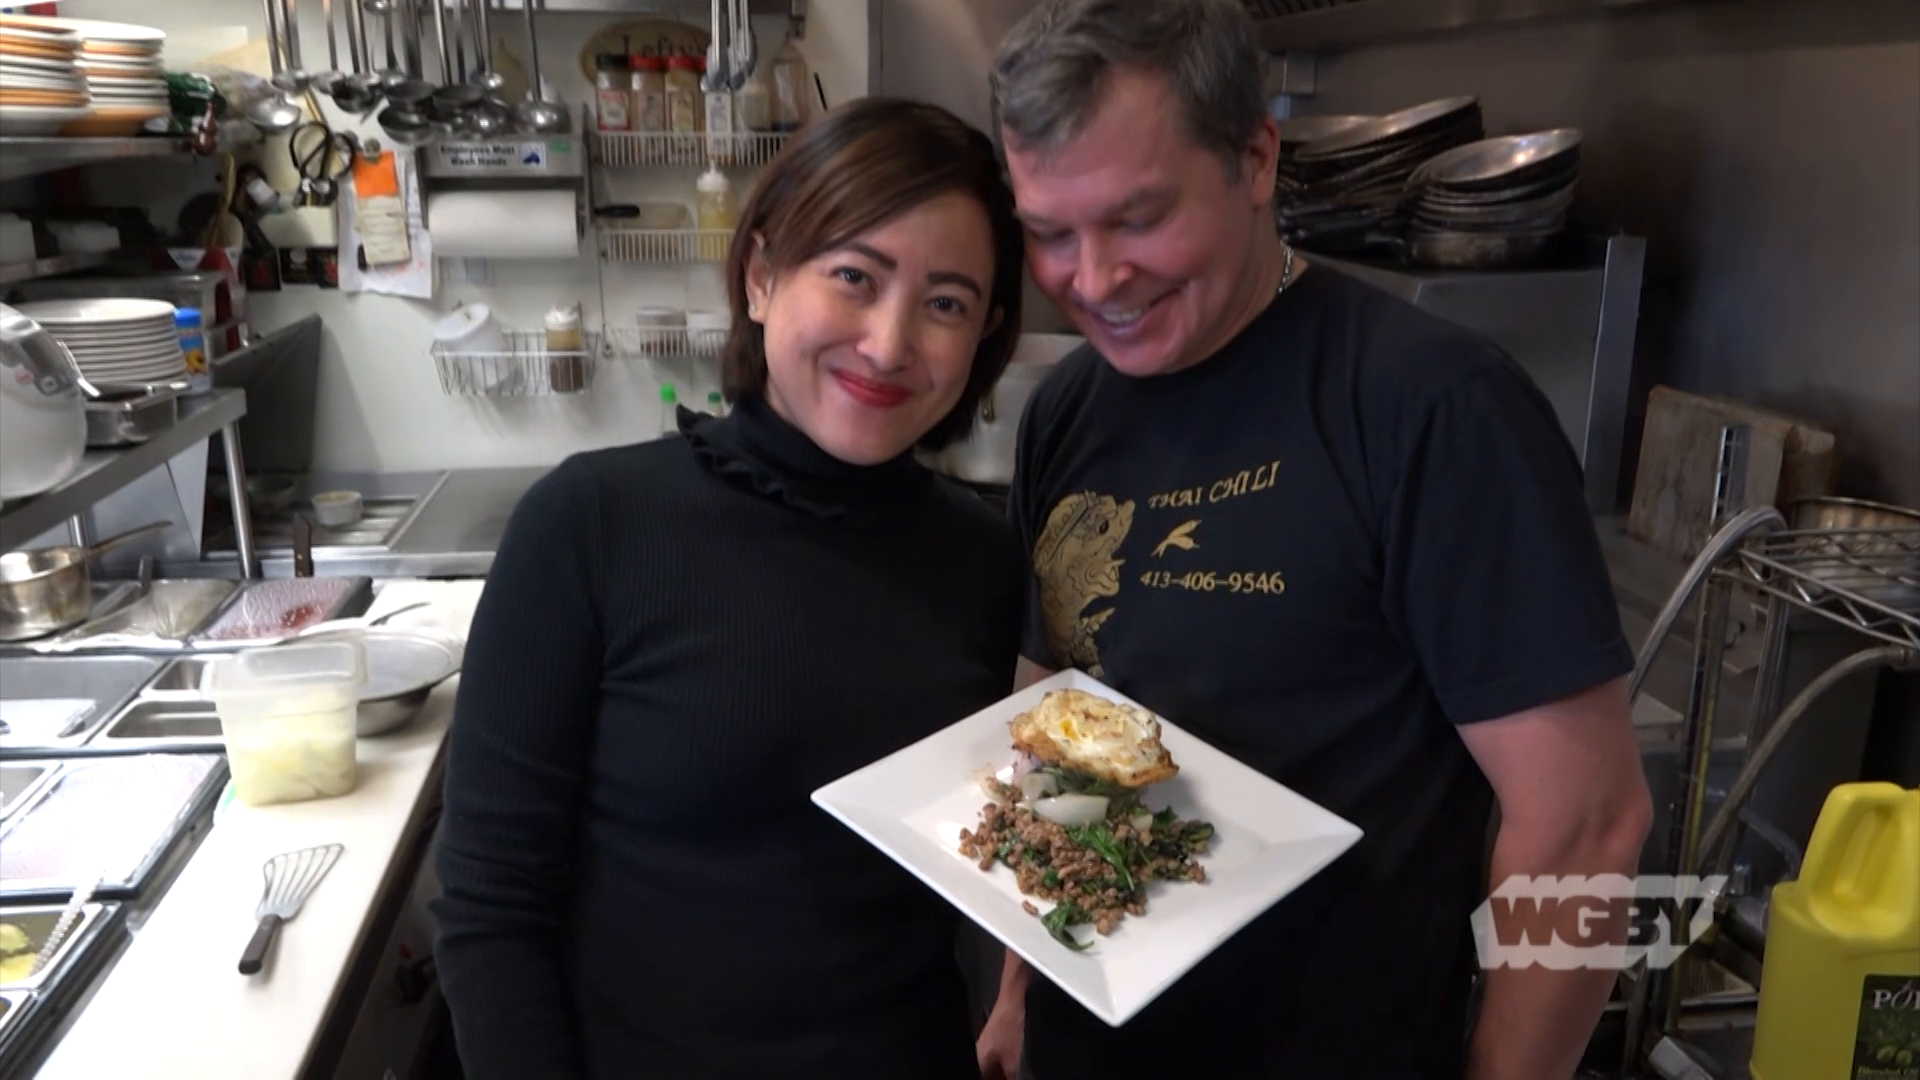 CISA Field Notes storyteller Supicha Hillenbrand shares how her love of Thai cuisine influences the food at Bottega Cucina and the Thai Chili food truck.